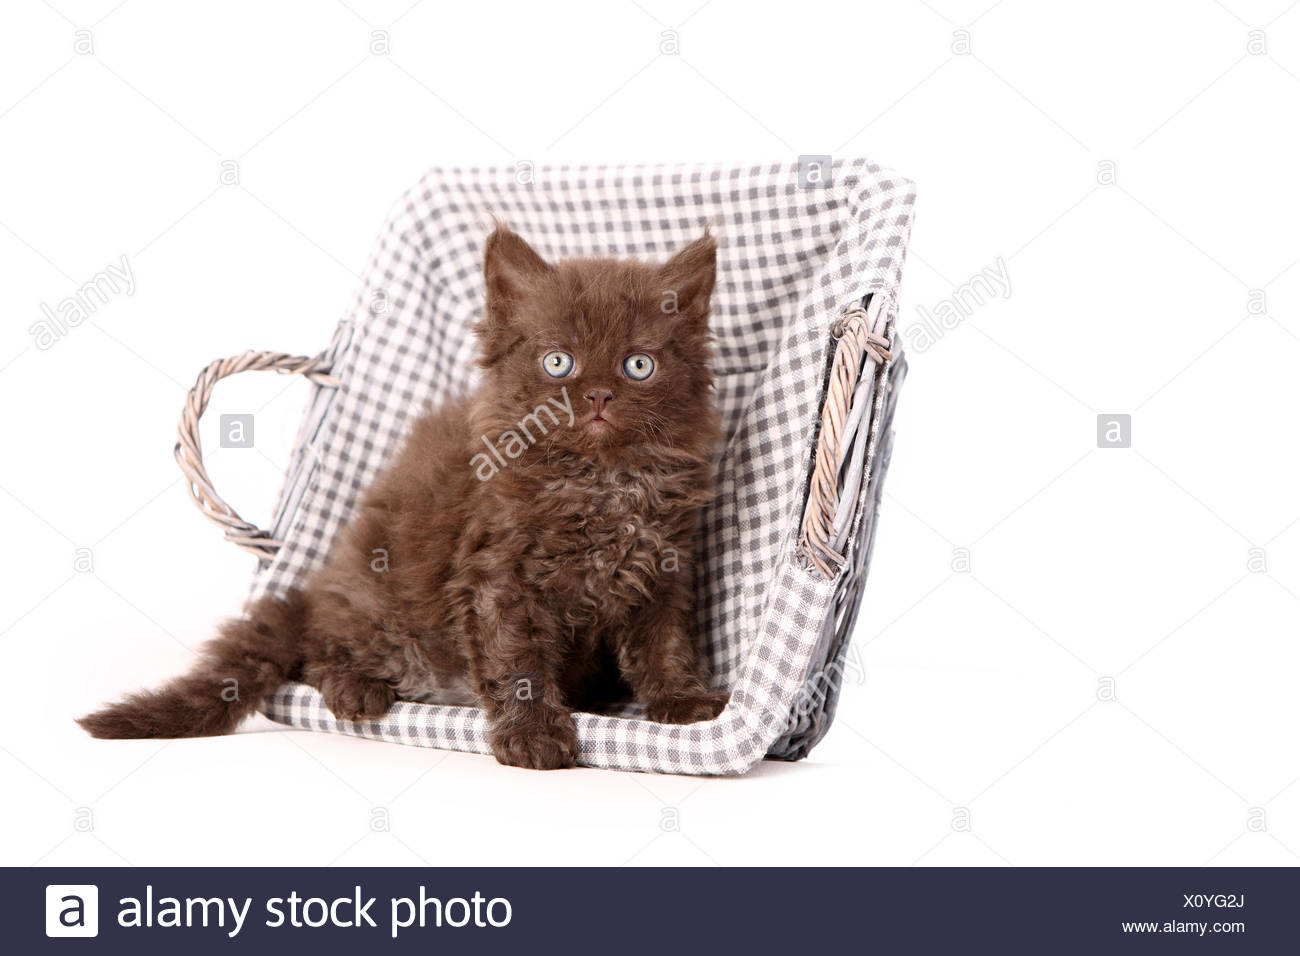 Selkirk Rex. Kitten (6 weeks old) sitting in a basket. Studio picture against a white background. Germany - Stock Image